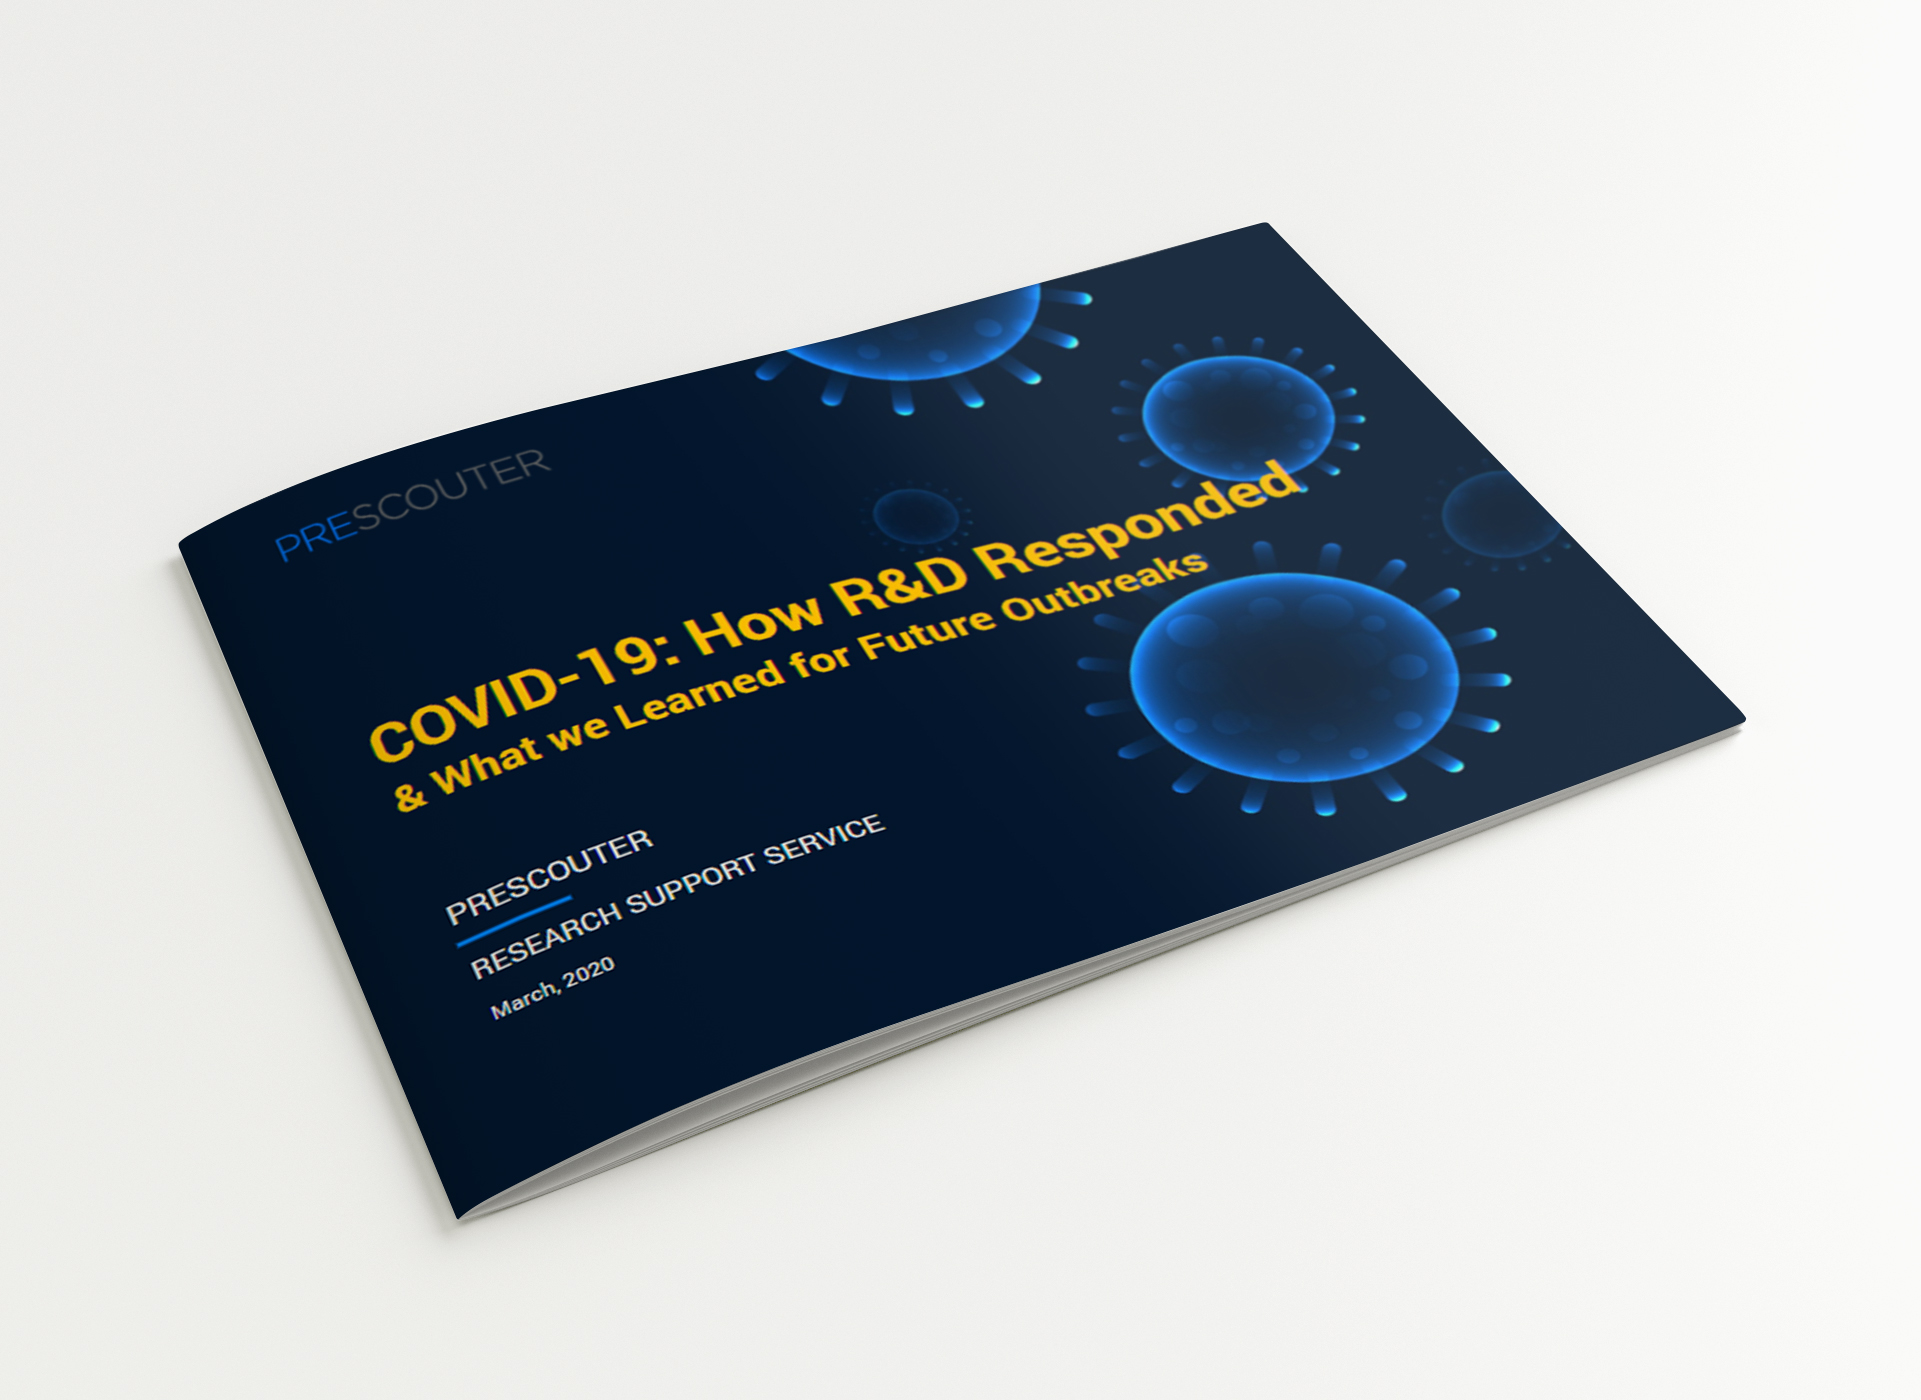 COVID-19: How R&D Responded & What We Learned for Future Outbreaks